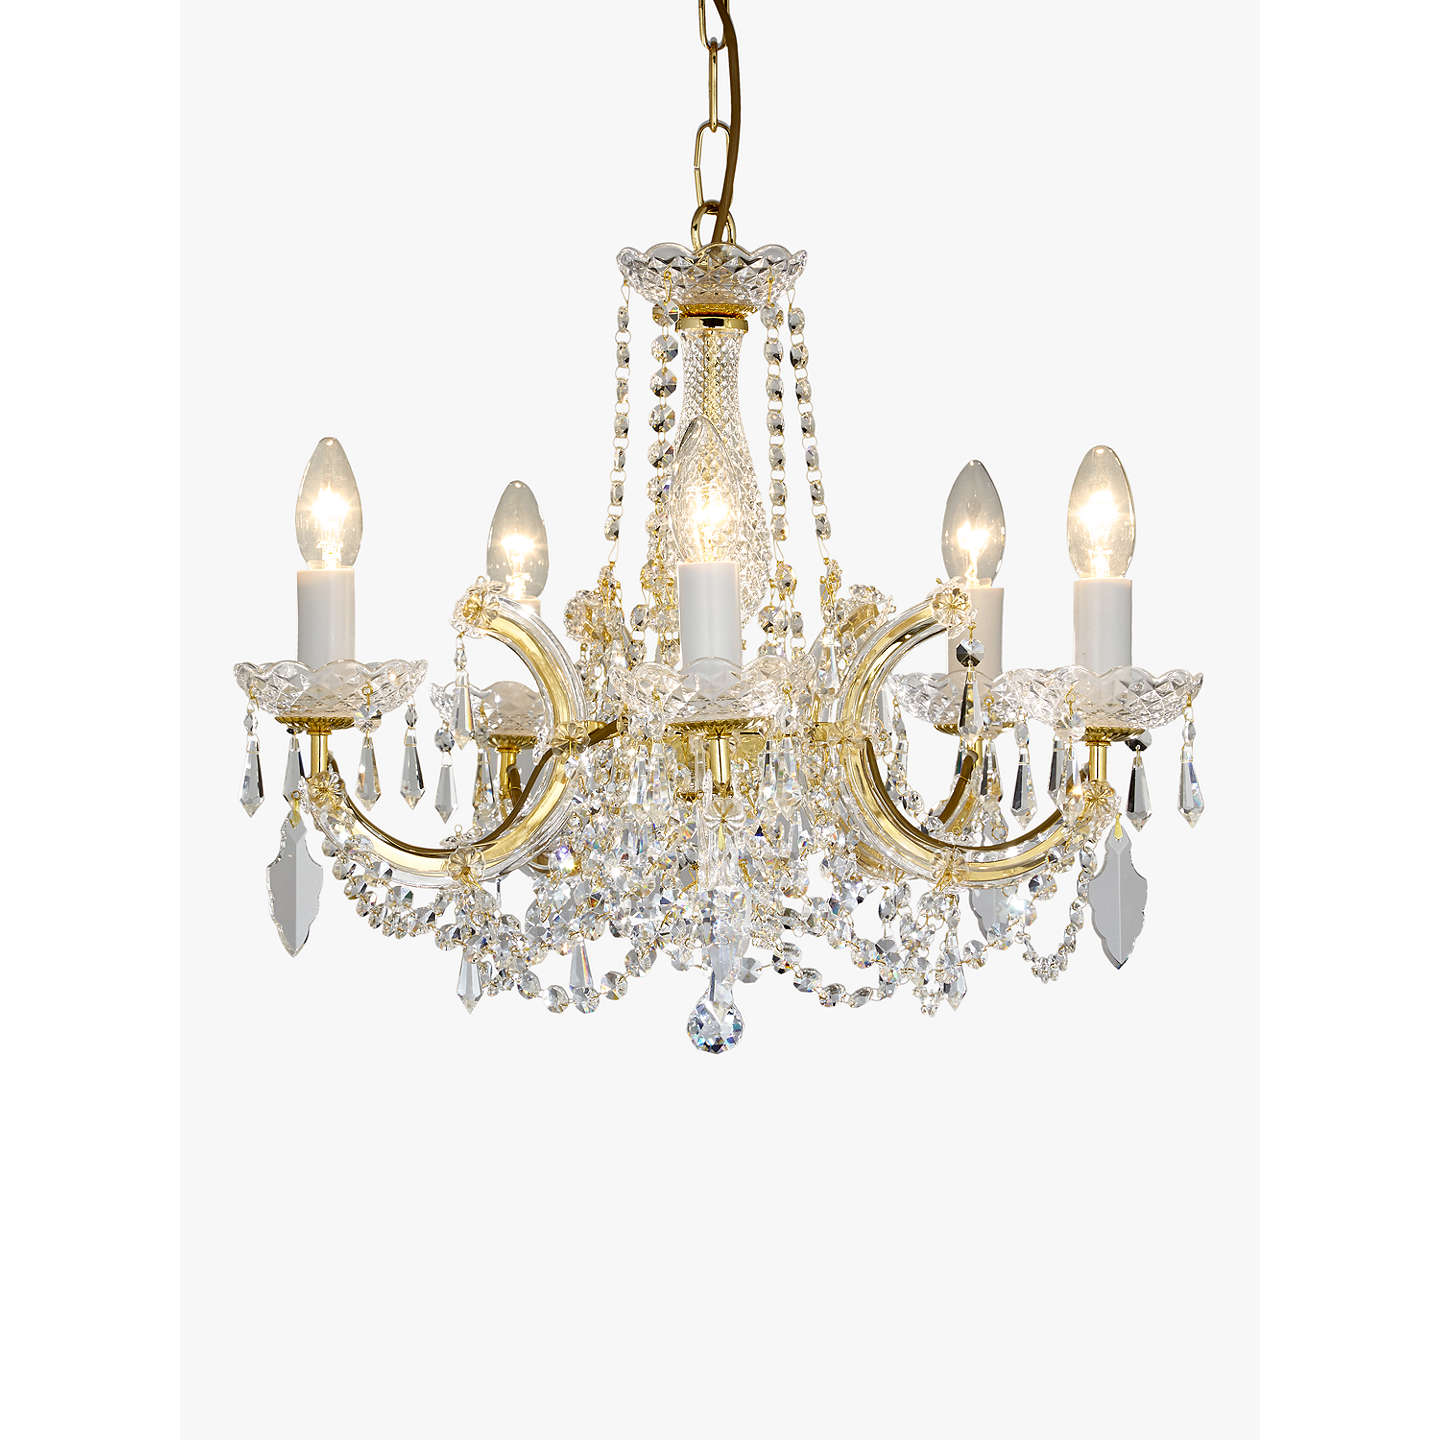 Impex marie theresa chandelier 5 arm cleargold at john lewis buyimpex marie theresa chandelier 5 arm cleargold online at johnlewis mozeypictures Choice Image